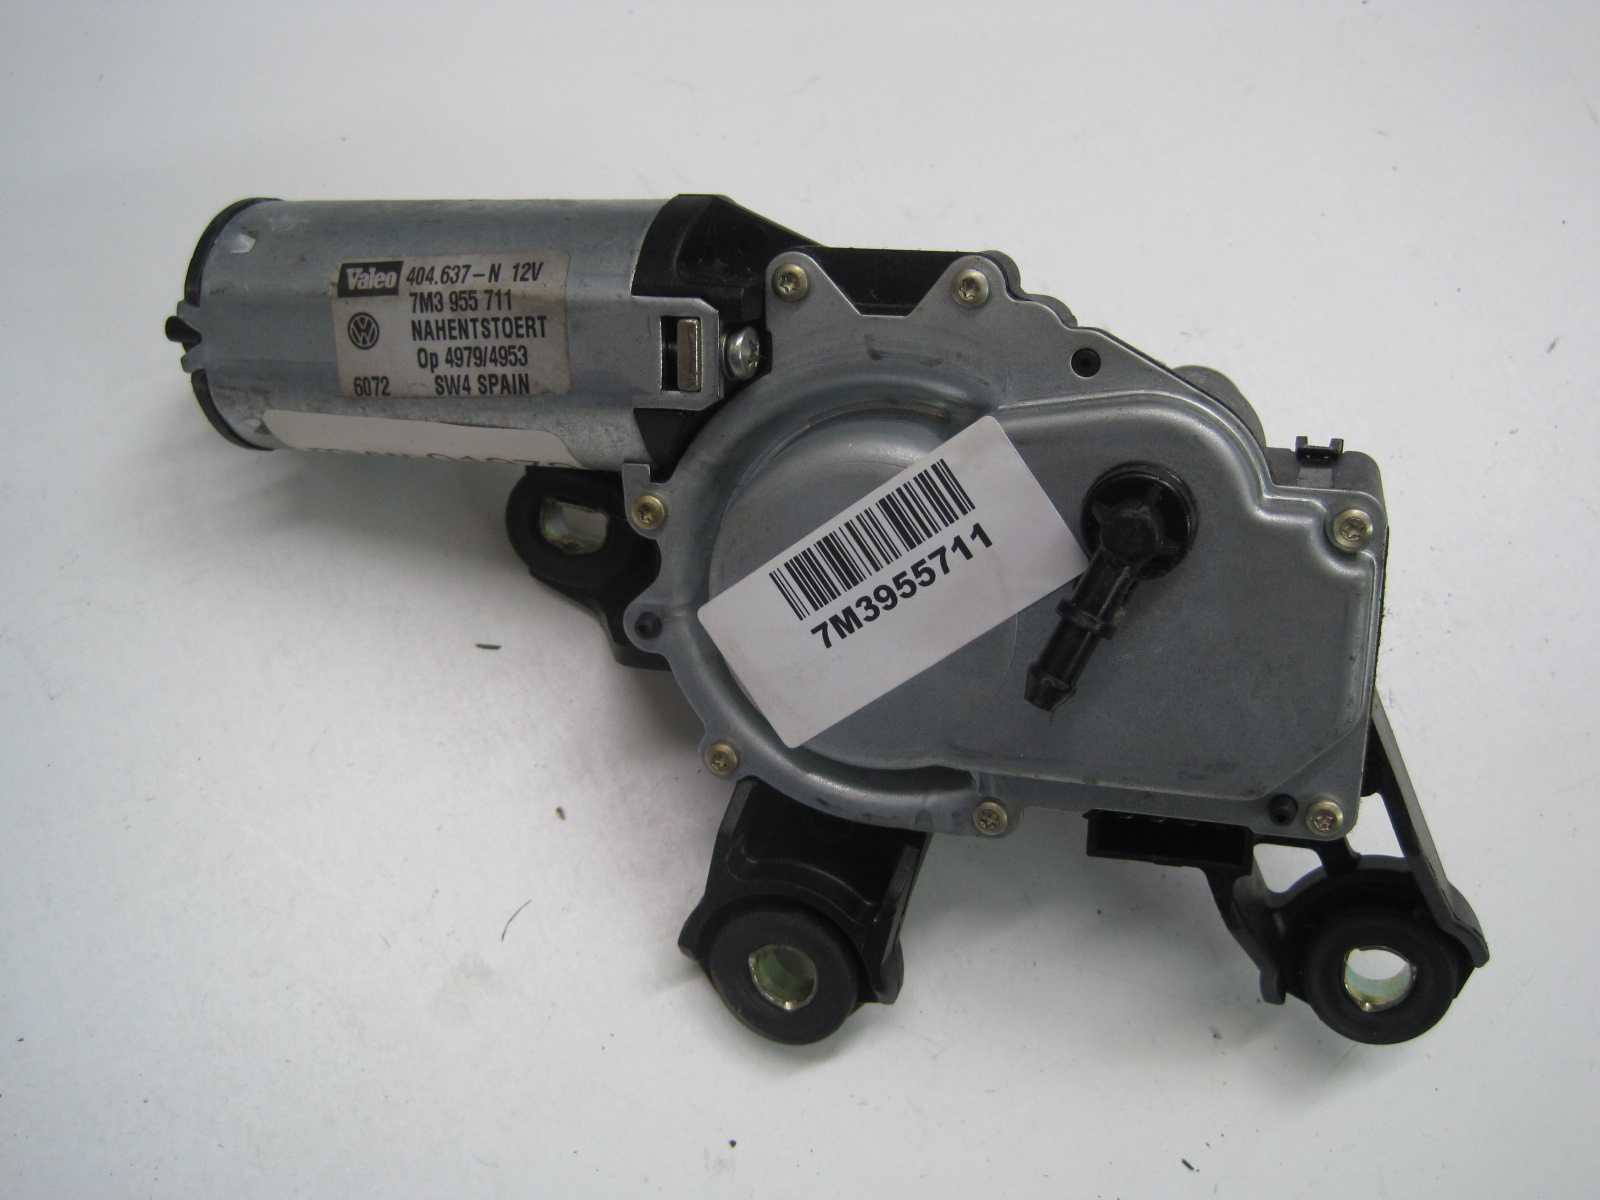 Wiper Motor Rear VW Sharan 7M3955711